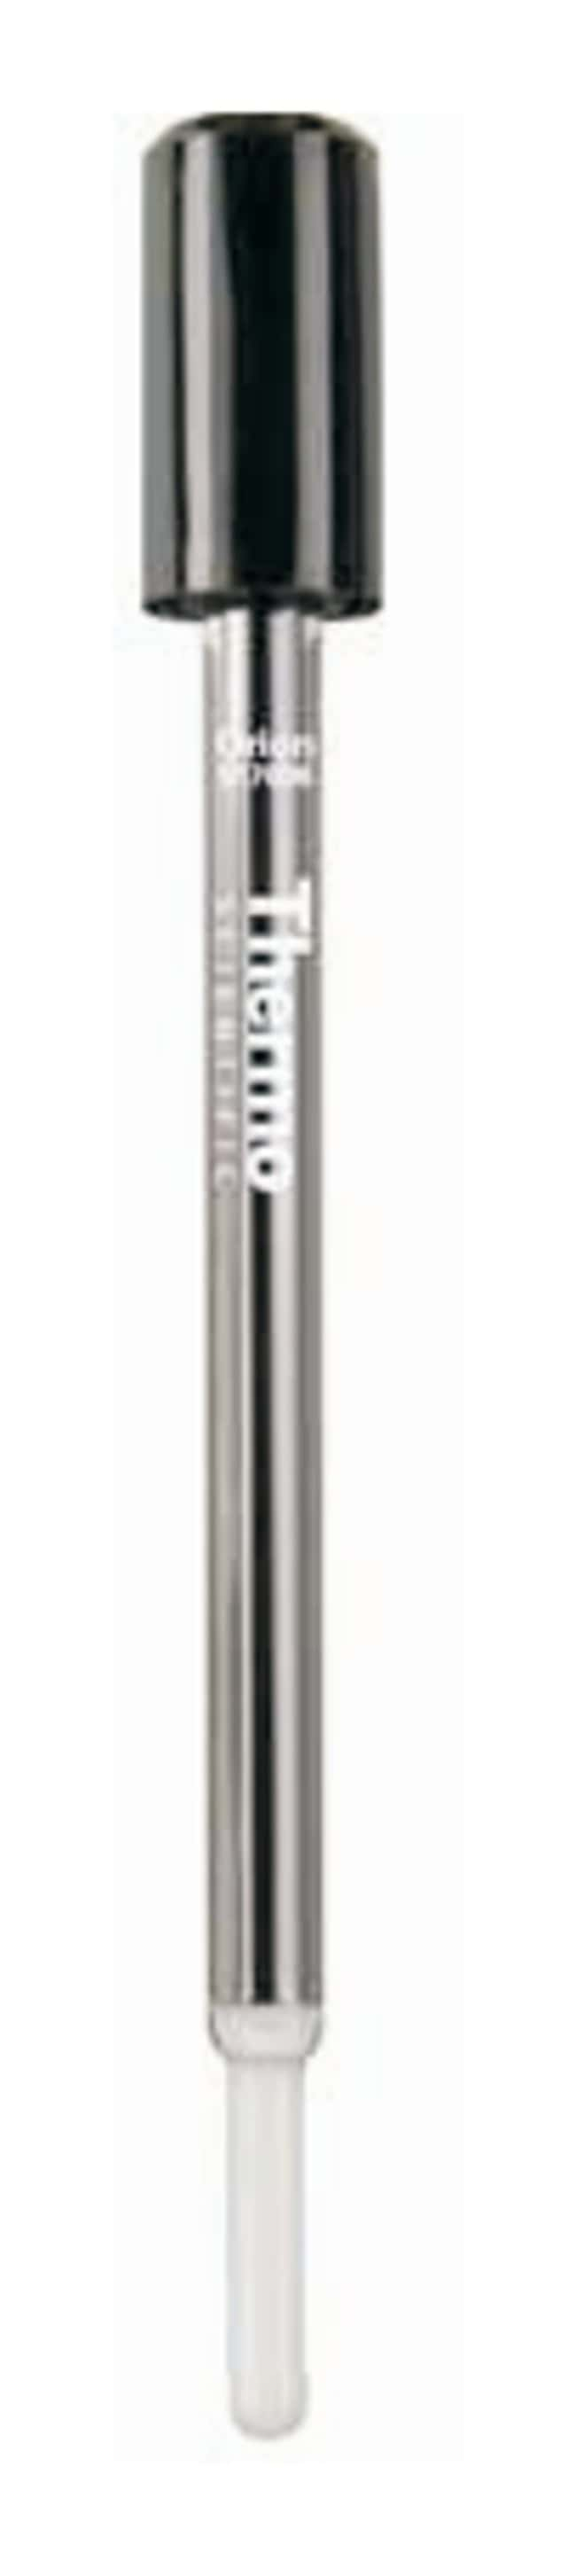 Thermo Scientific Orion 927006MD Glass ATC Probe:Thermometers, pH Meters,